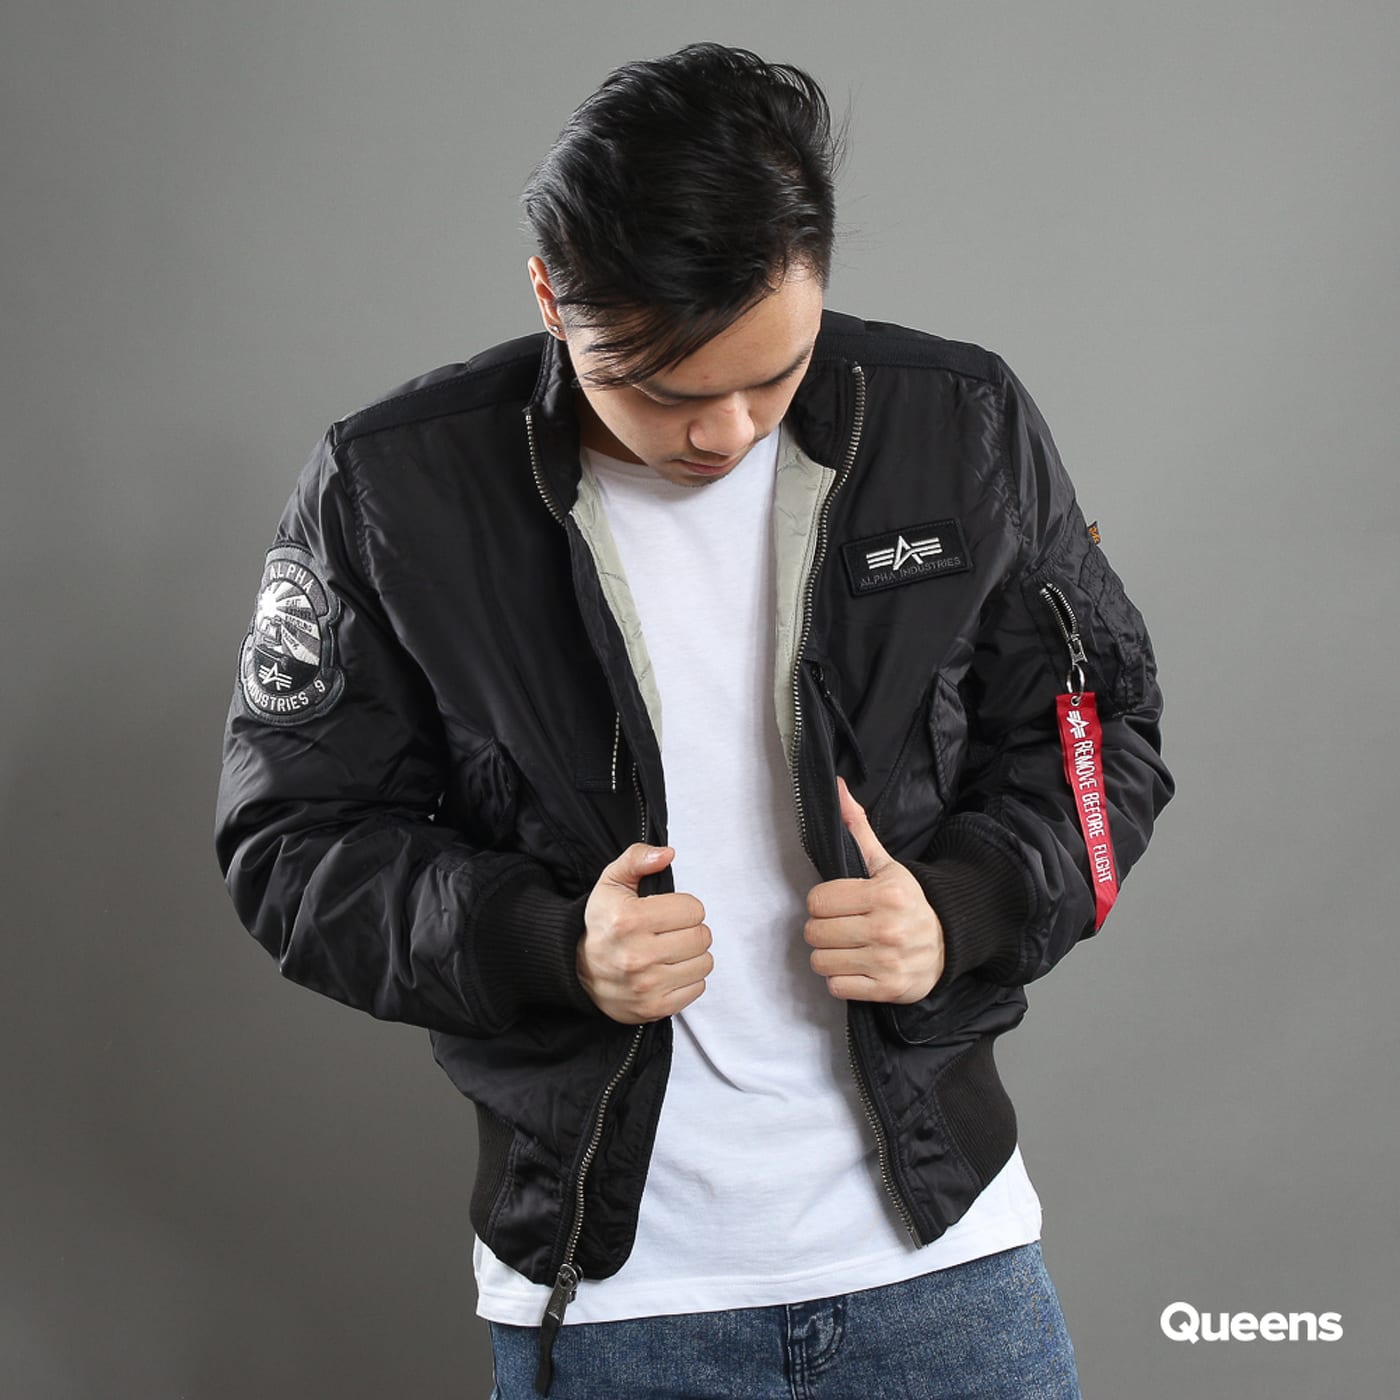 f5ec3d8a6 Bomber bunda Alpha Industries Engine (103101 03) – Queens 💚